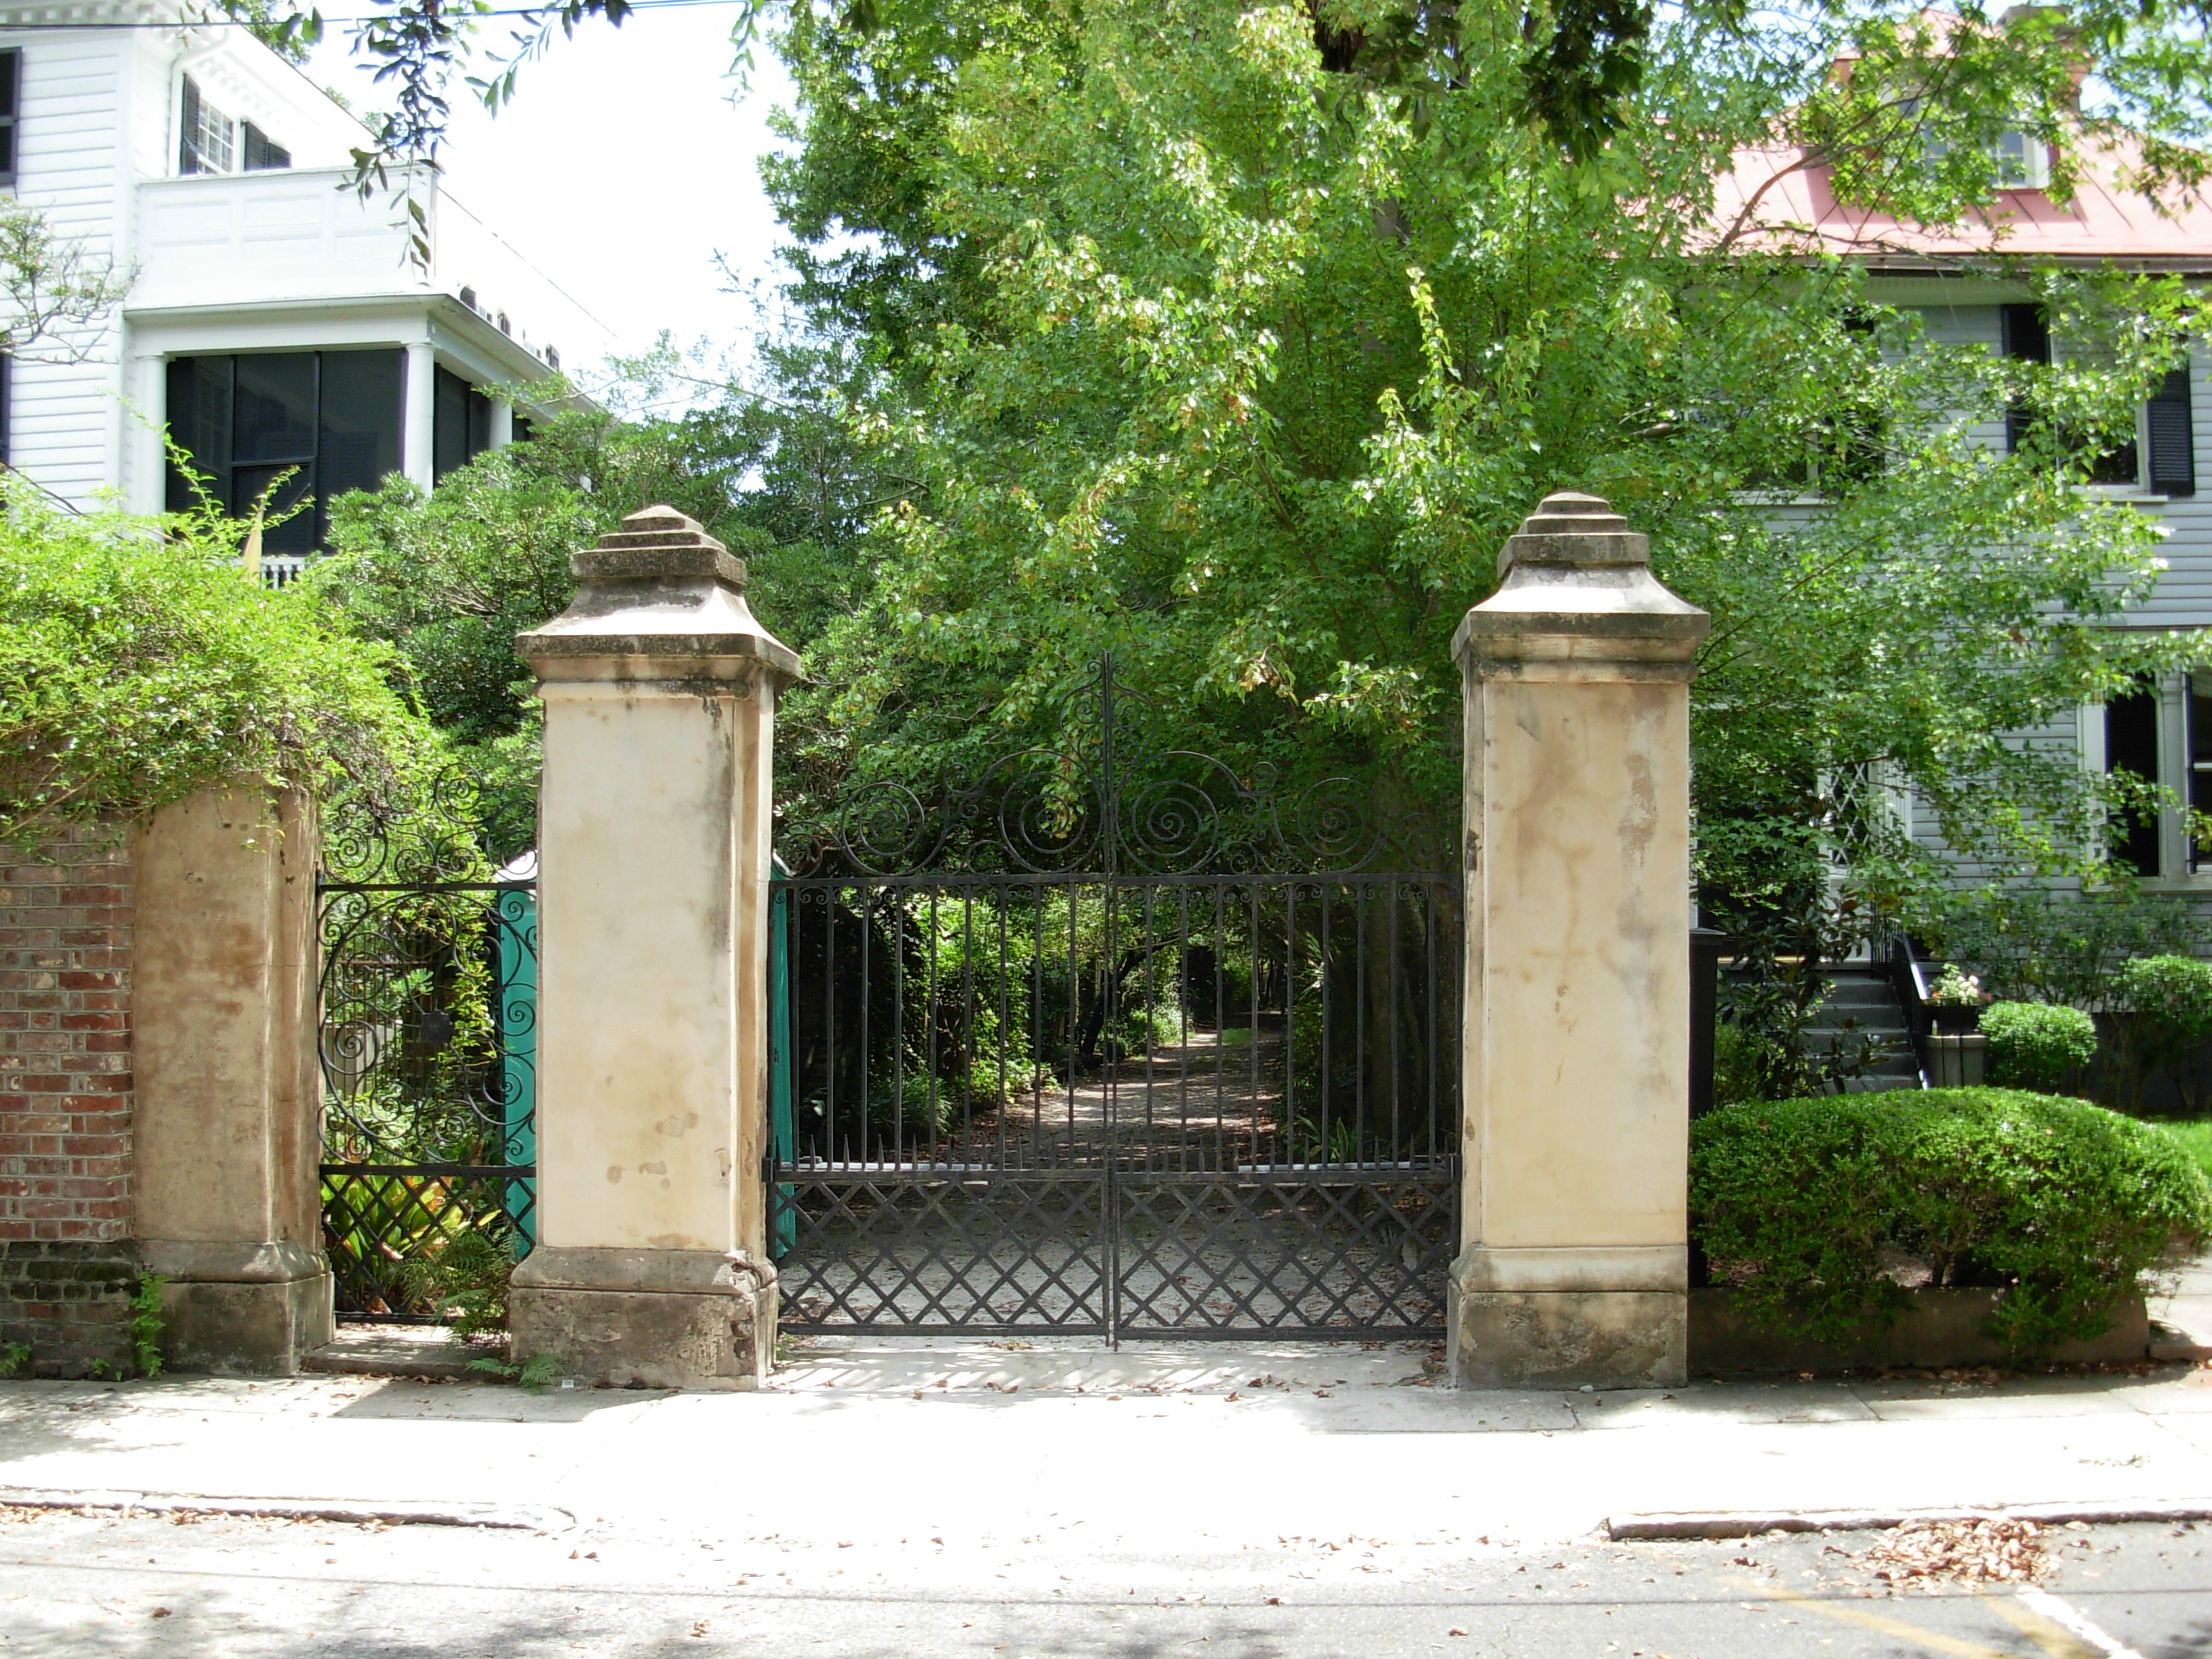 Simmons Gateposts Tradd Street Charleston SC ghosts haunted